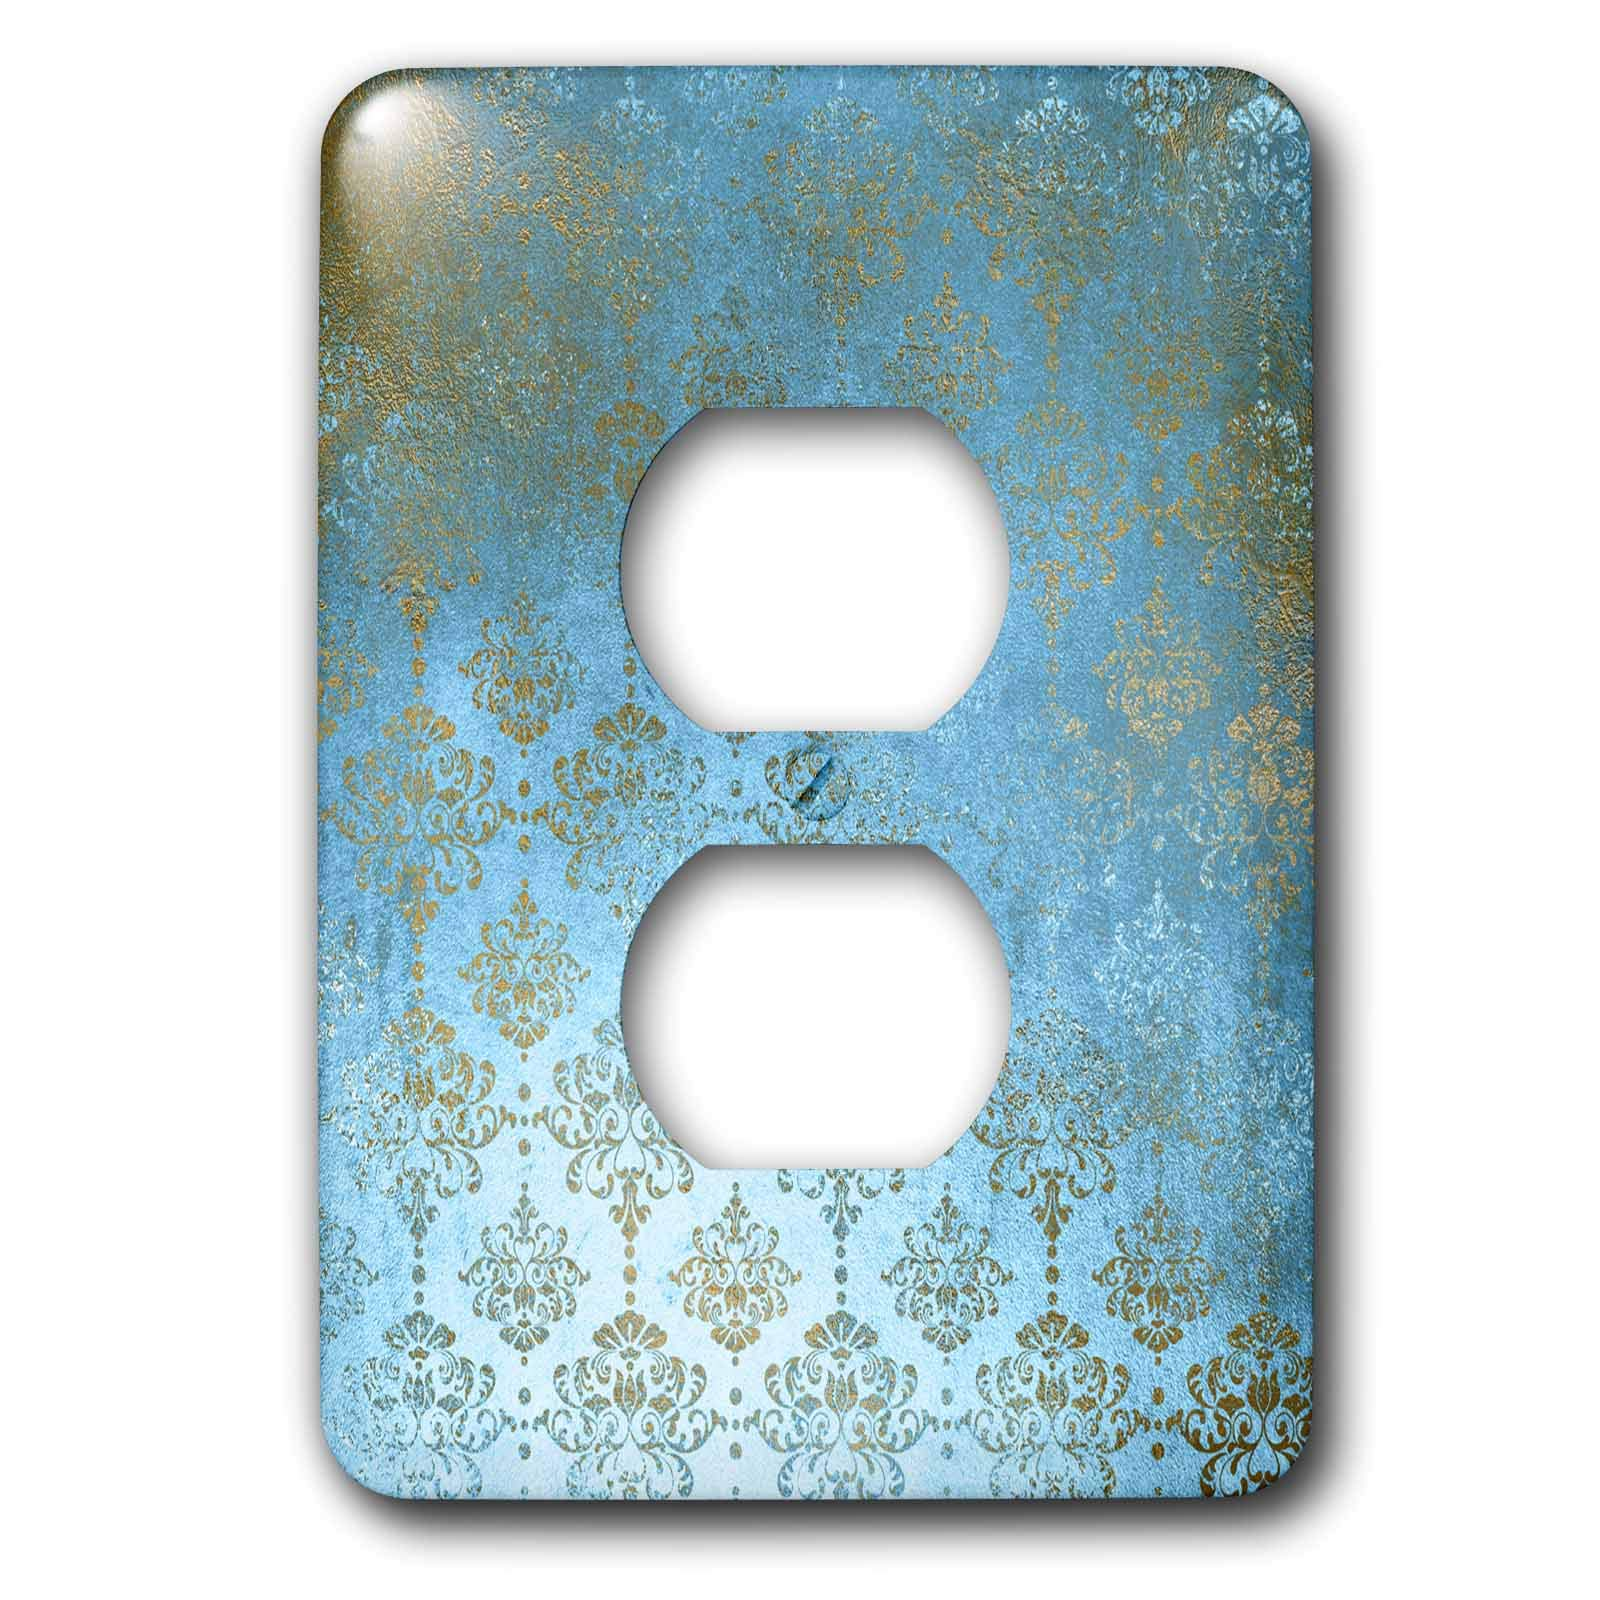 3dRose Uta Naumann Faux Glitter Pattern - Image of Sky Blue and Gold Metal Foil Vintage Grunge Luxury Damask Pattern - Light Switch Covers - 2 plug outlet cover (lsp_290169_6)